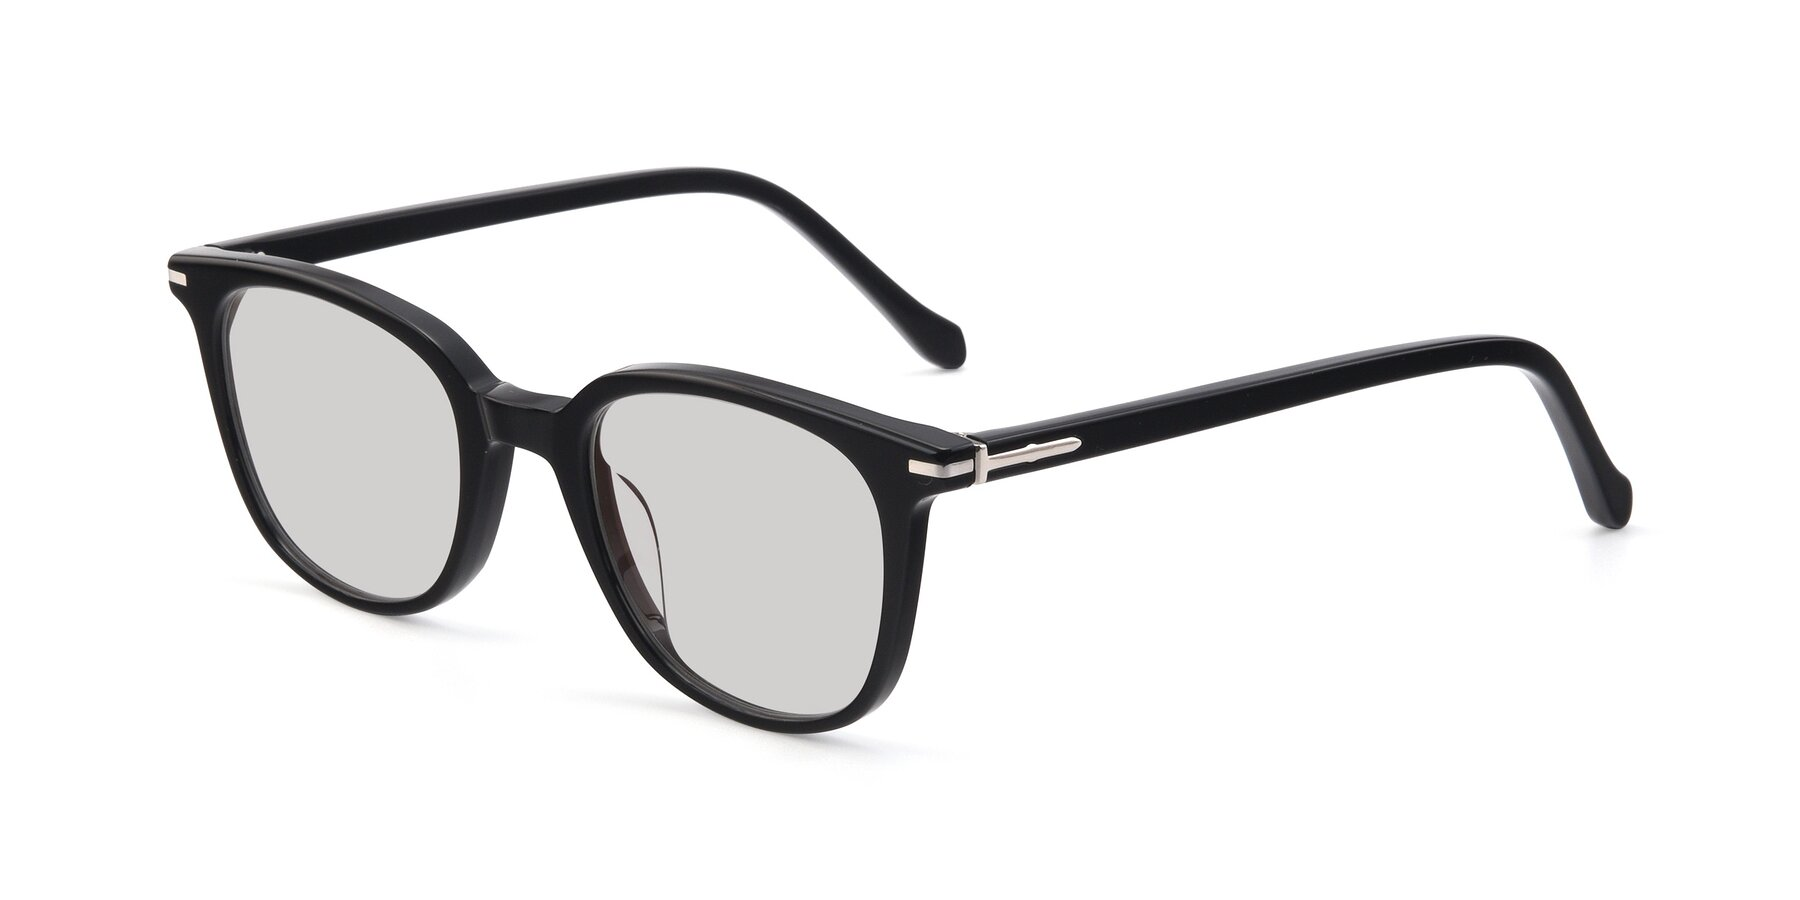 Angle of 17562 in Black with Light Gray Tinted Lenses